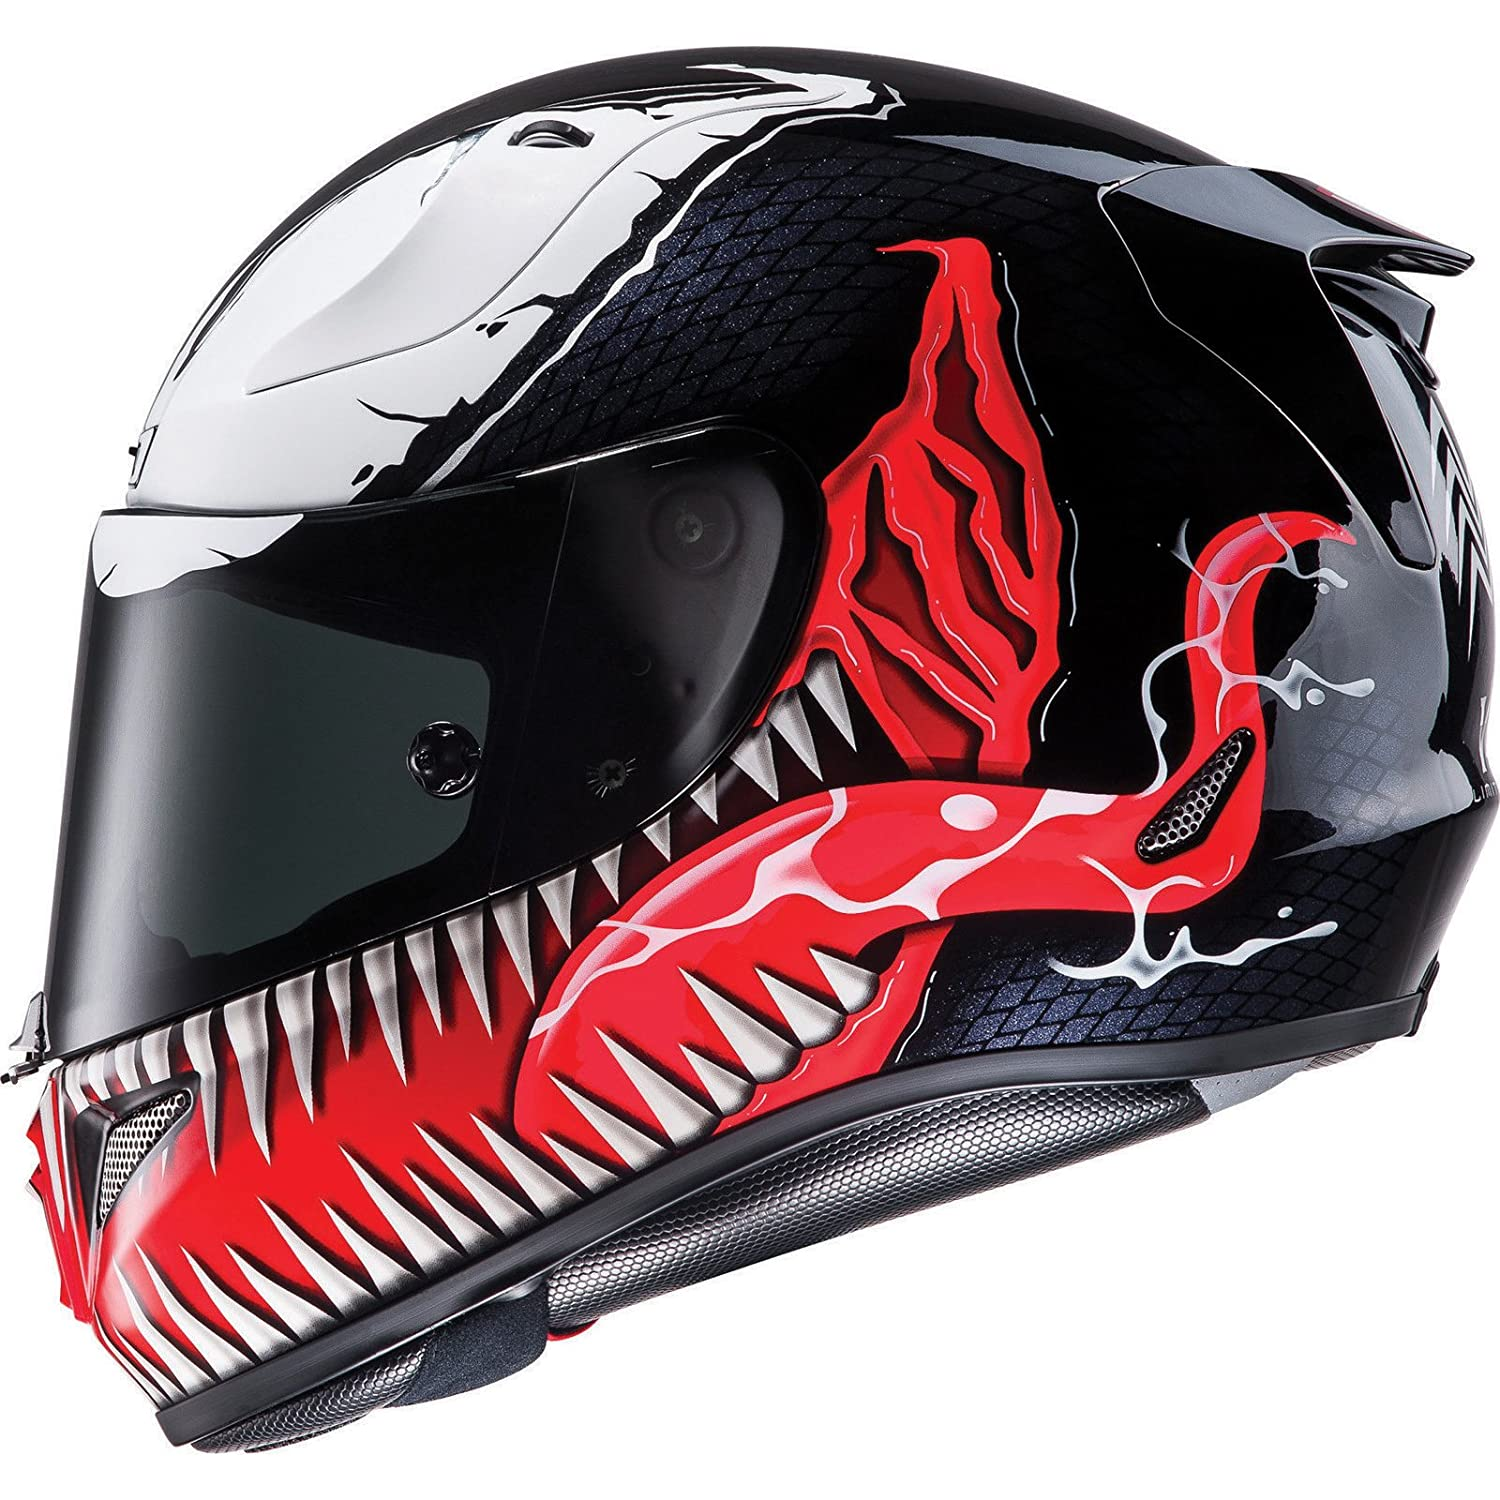 HJC Rpha 11 Venom casco de moto, R1VRS, Black White Red ...